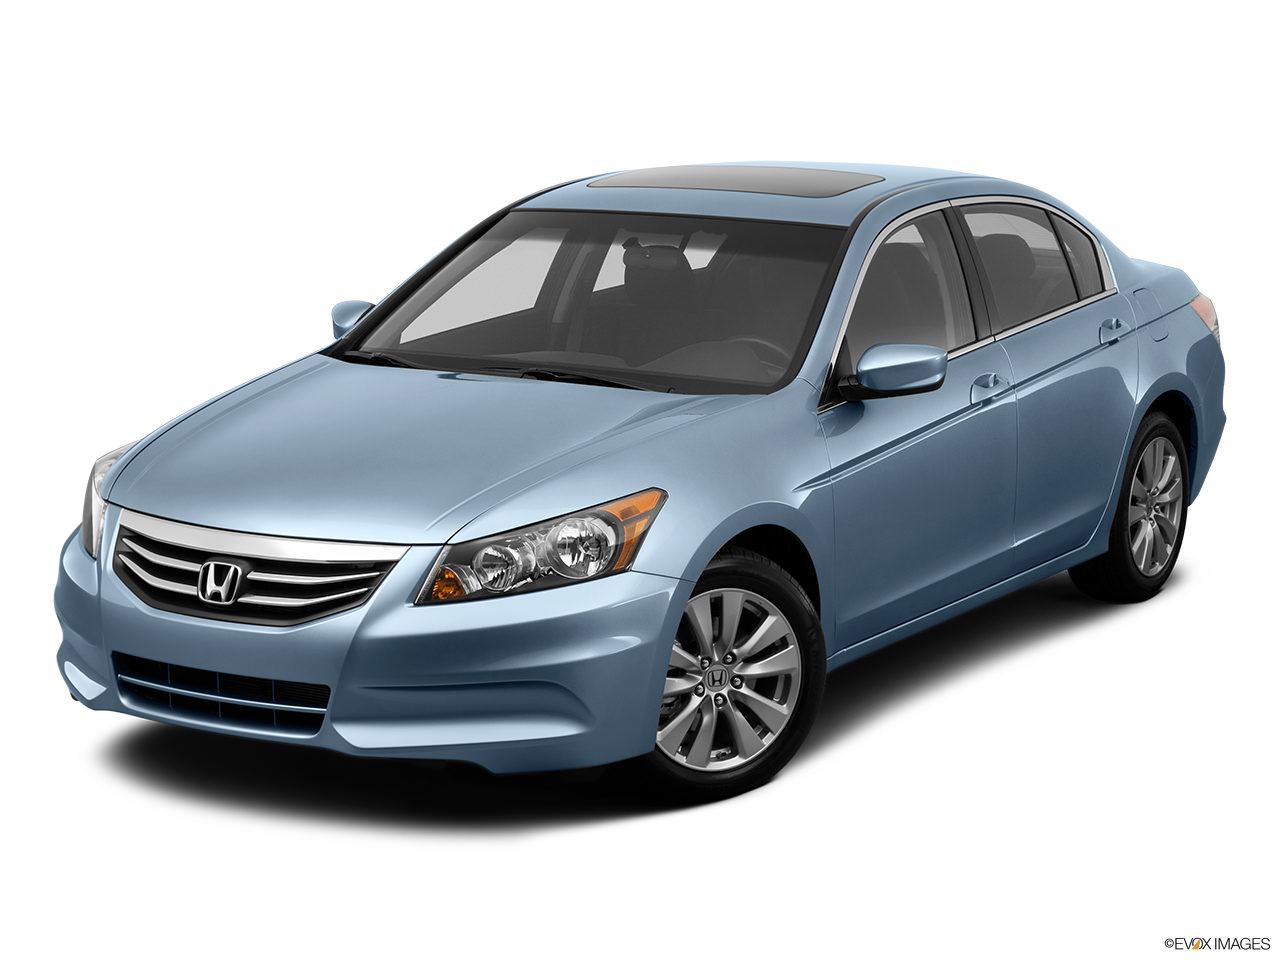 2012 honda accord vs 2012 honda civic which one should i. Black Bedroom Furniture Sets. Home Design Ideas